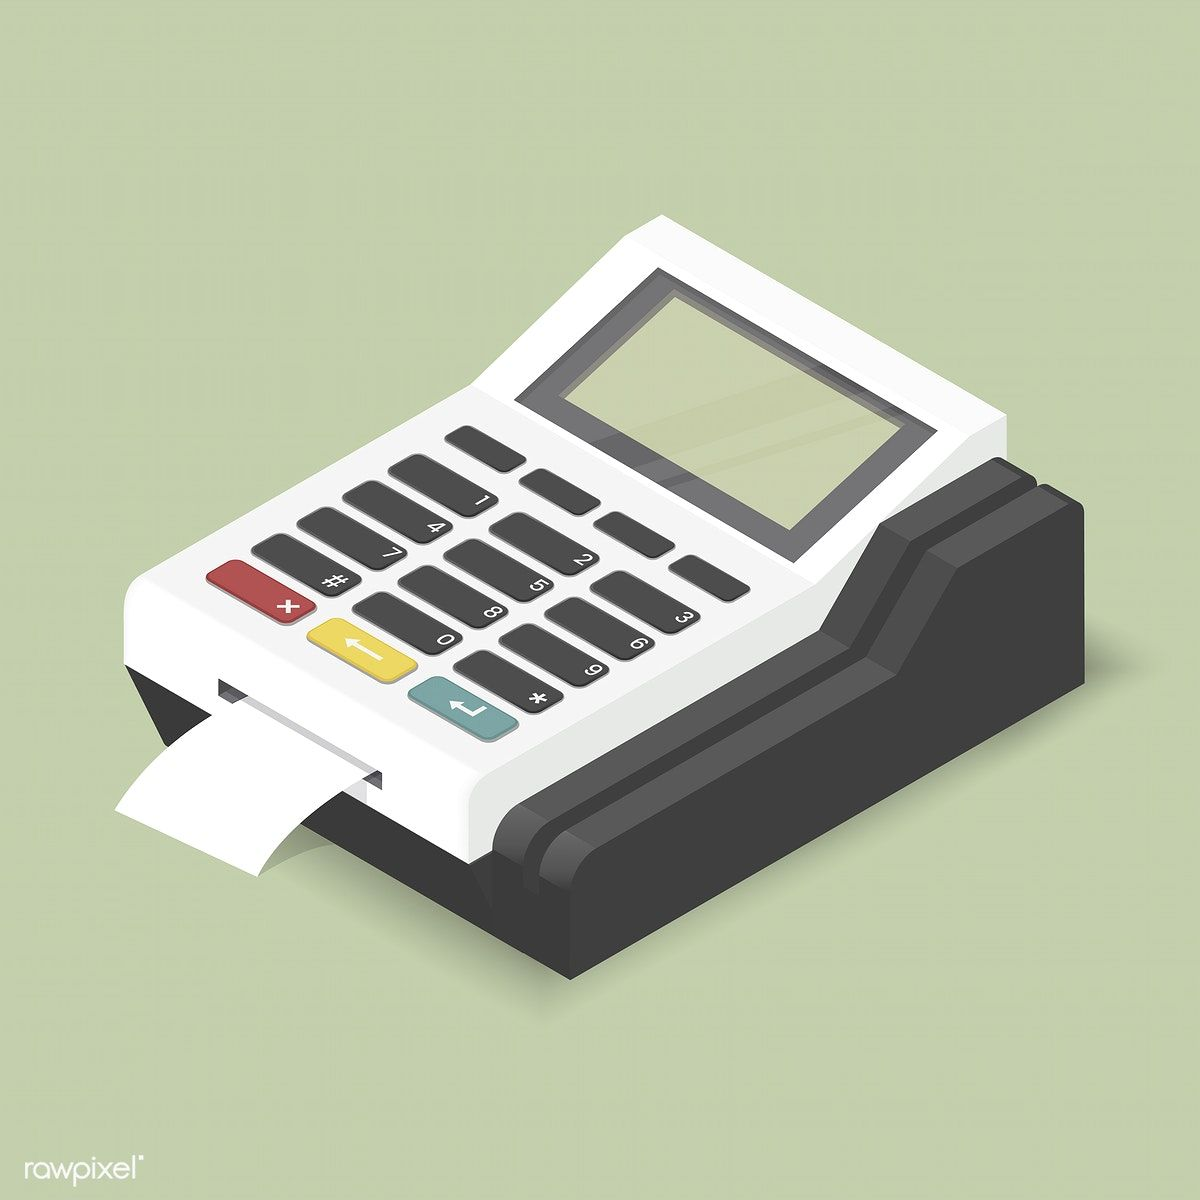 Vector image of calculator icon free image by rawpixel